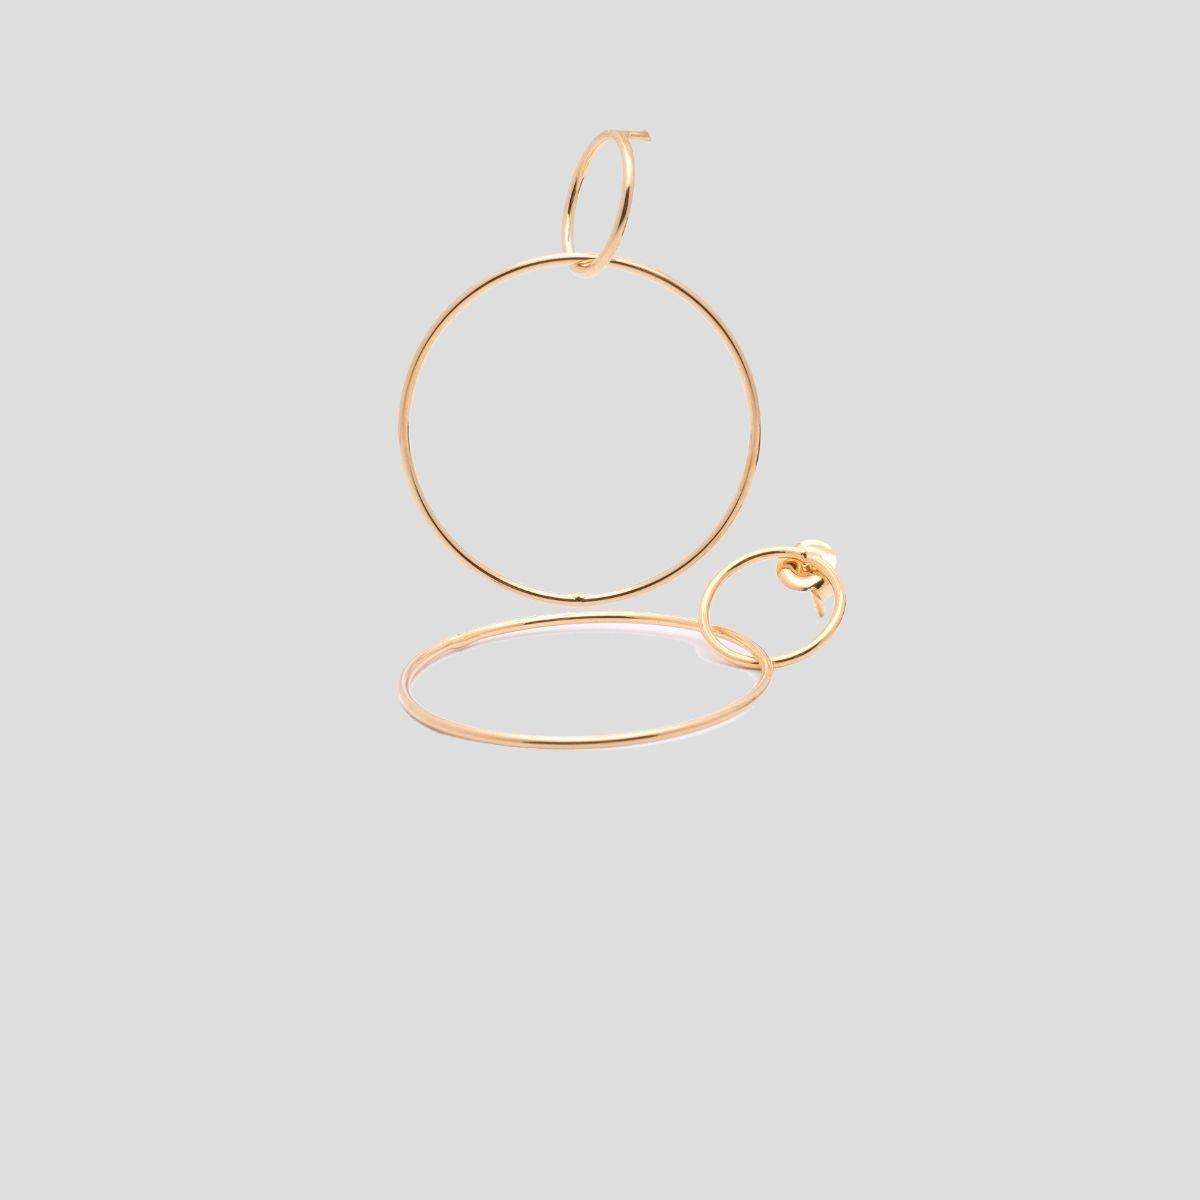 Jasmine metallic earring formed by two thin circles, the small one is the snap closure and the large one hangs